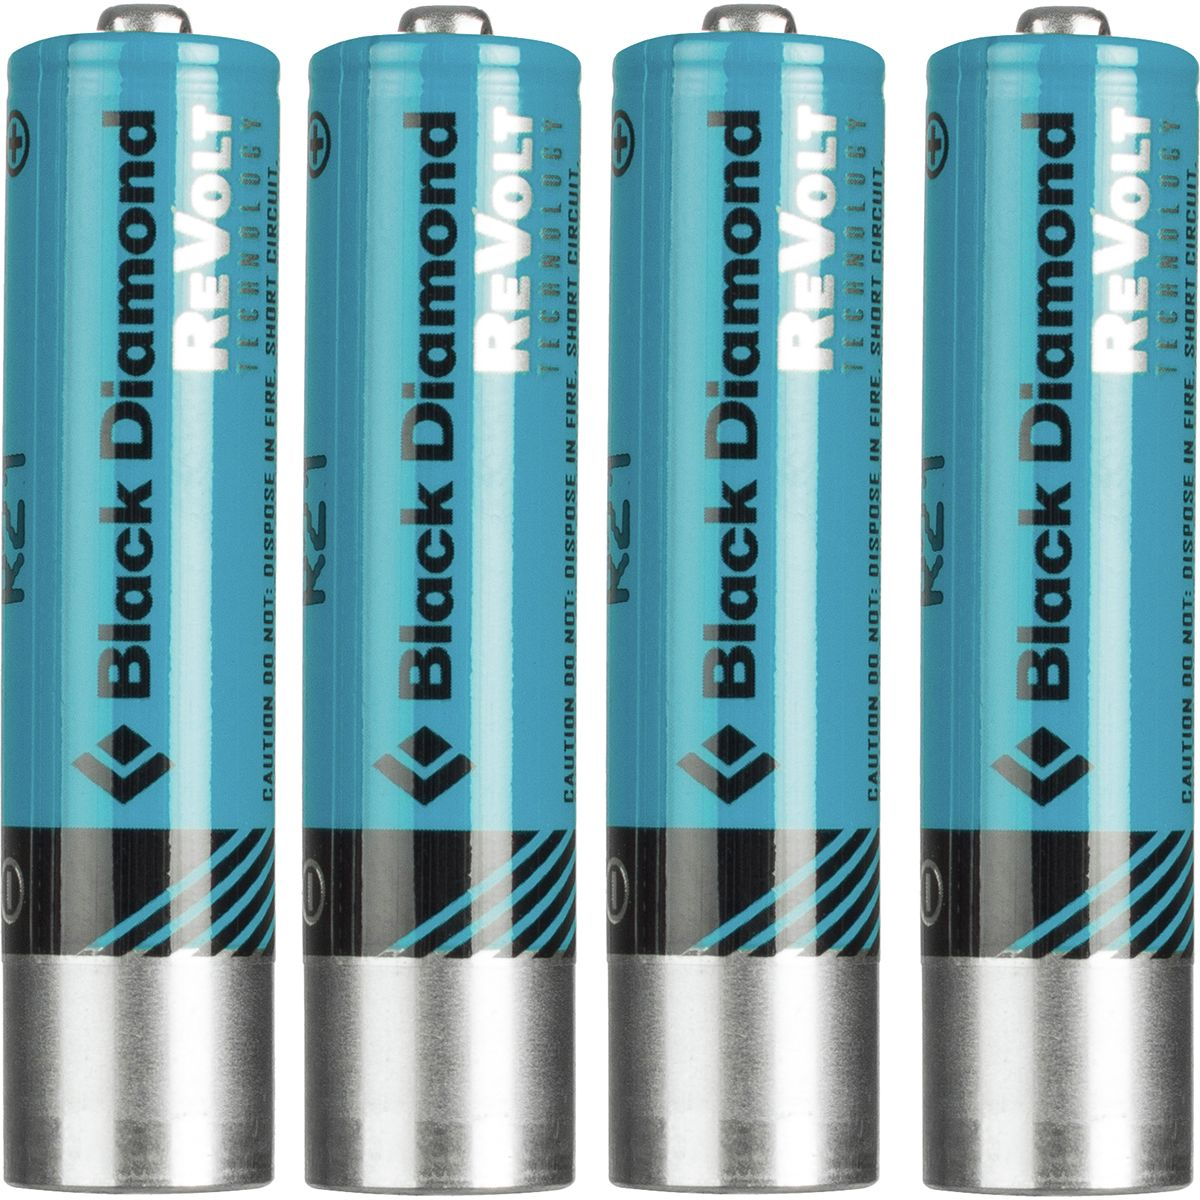 Black Diamond AAA Rechargeable Battery 4 Pack